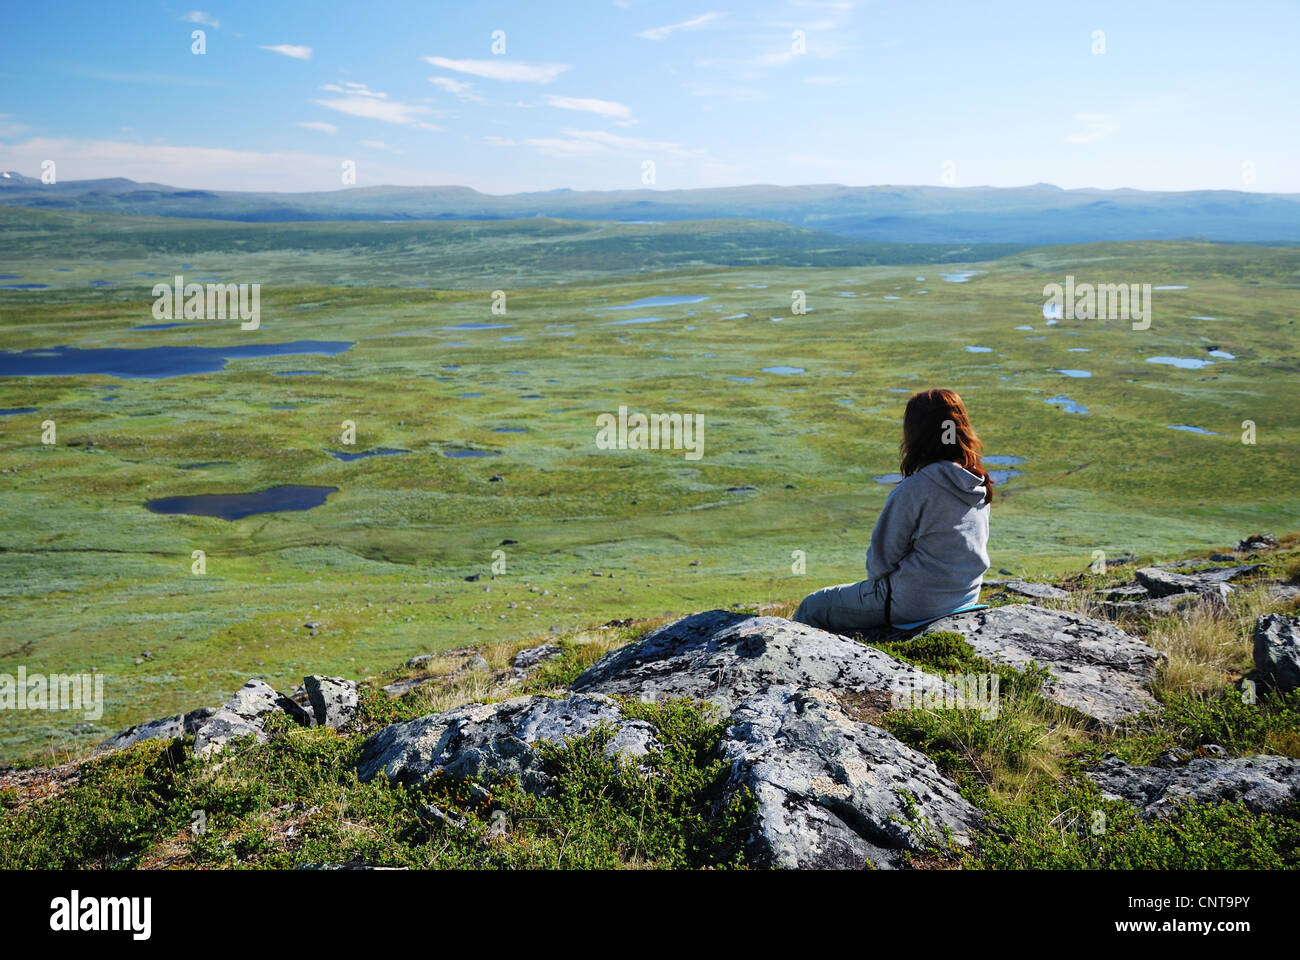 Woman against the green tableland with many small lakes. - Stock Image